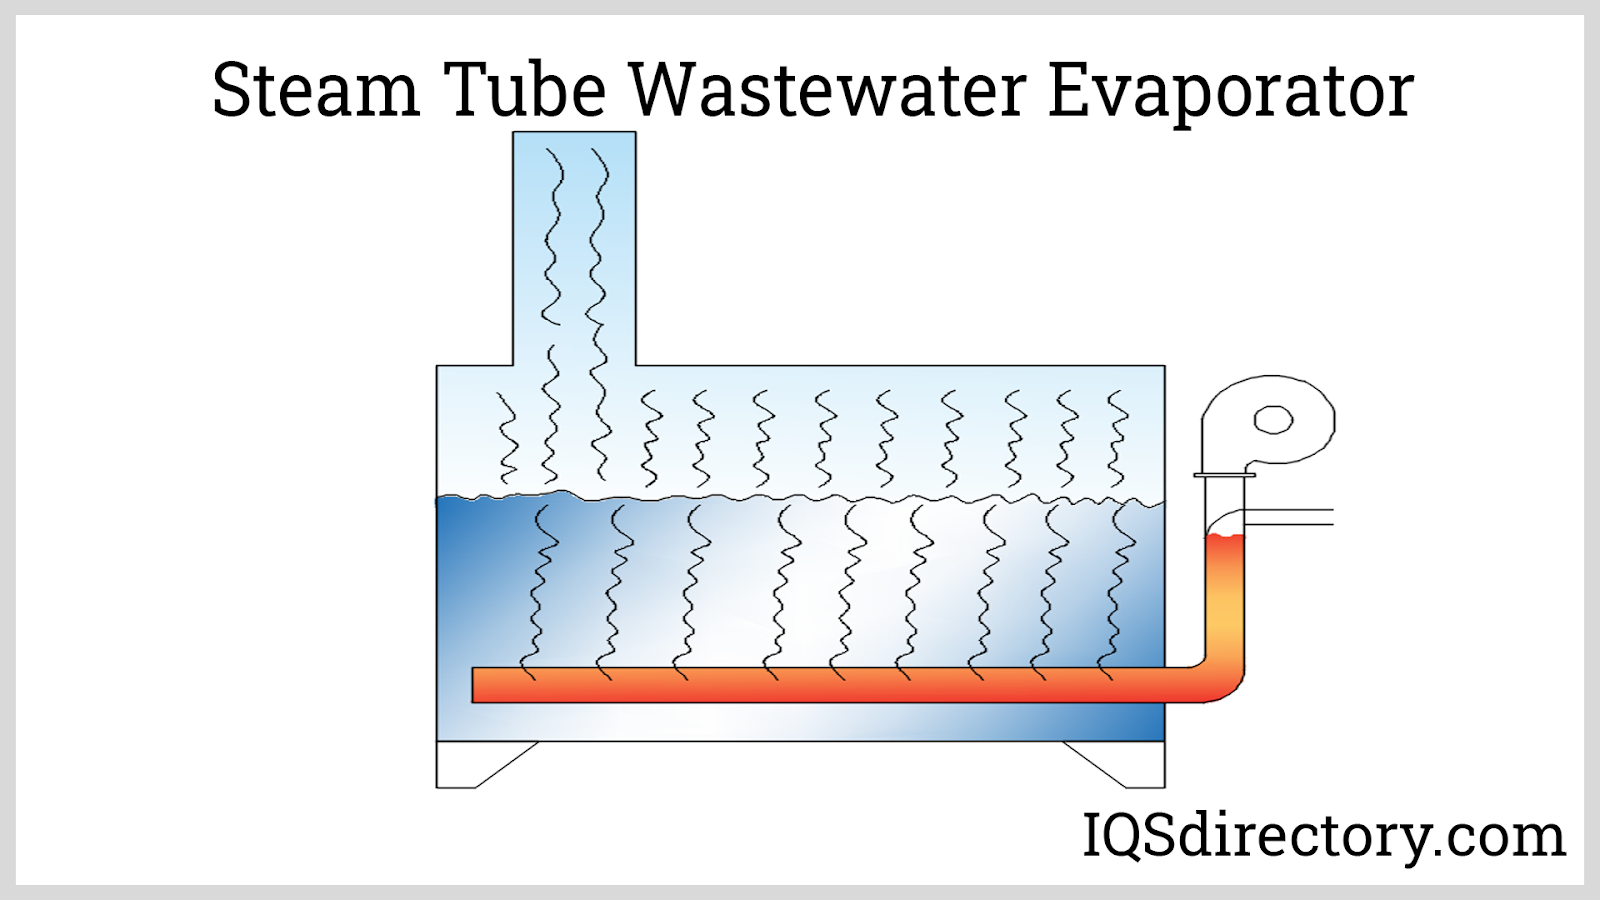 Steam Tube Wastewater Evaporator